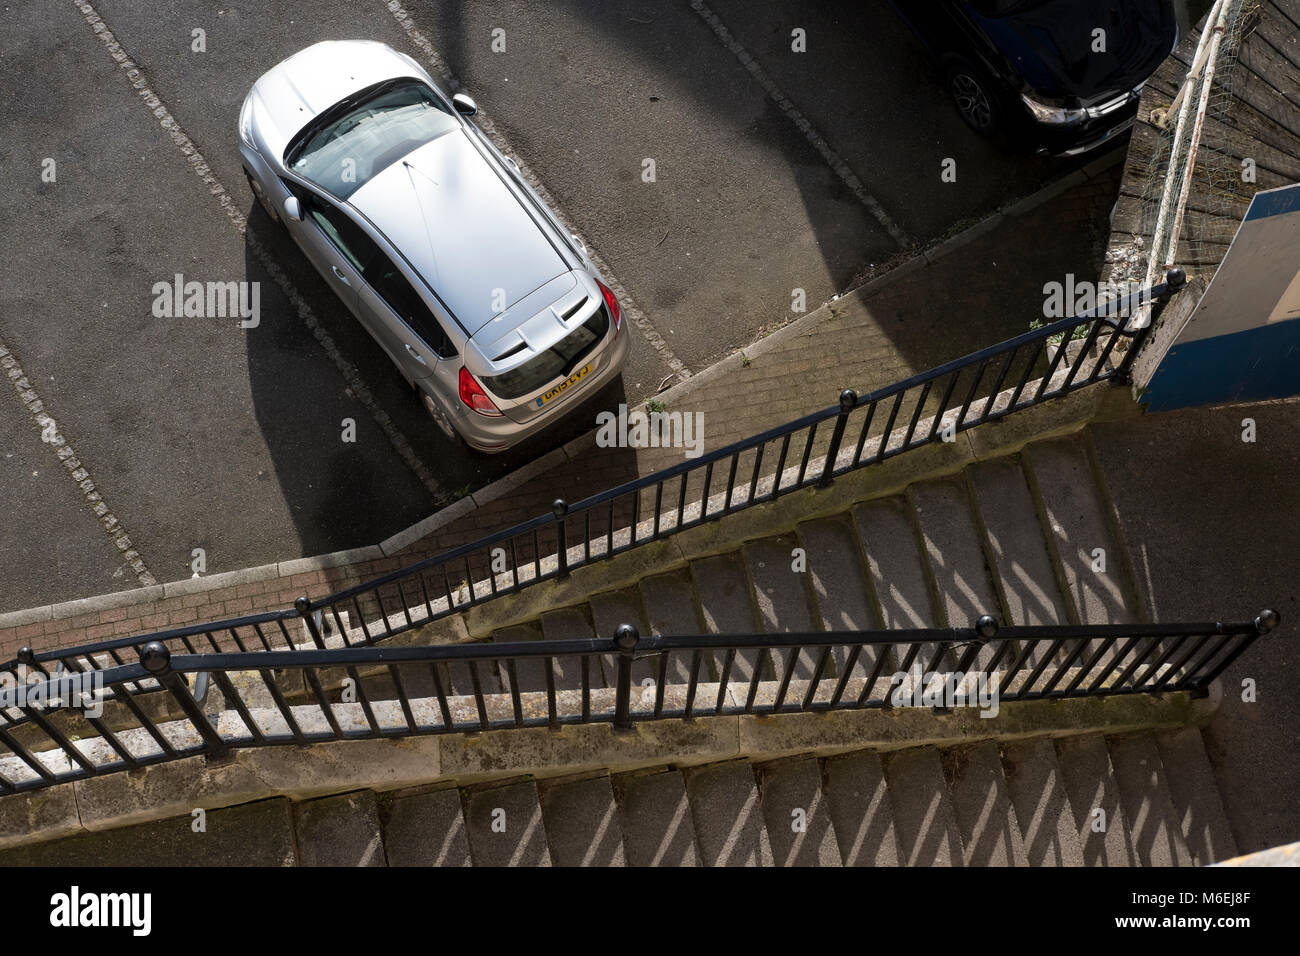 View looking down from top of steps overlooking Ramsgate Harbour onto the carpark beside the Sailors Church. - Stock Image